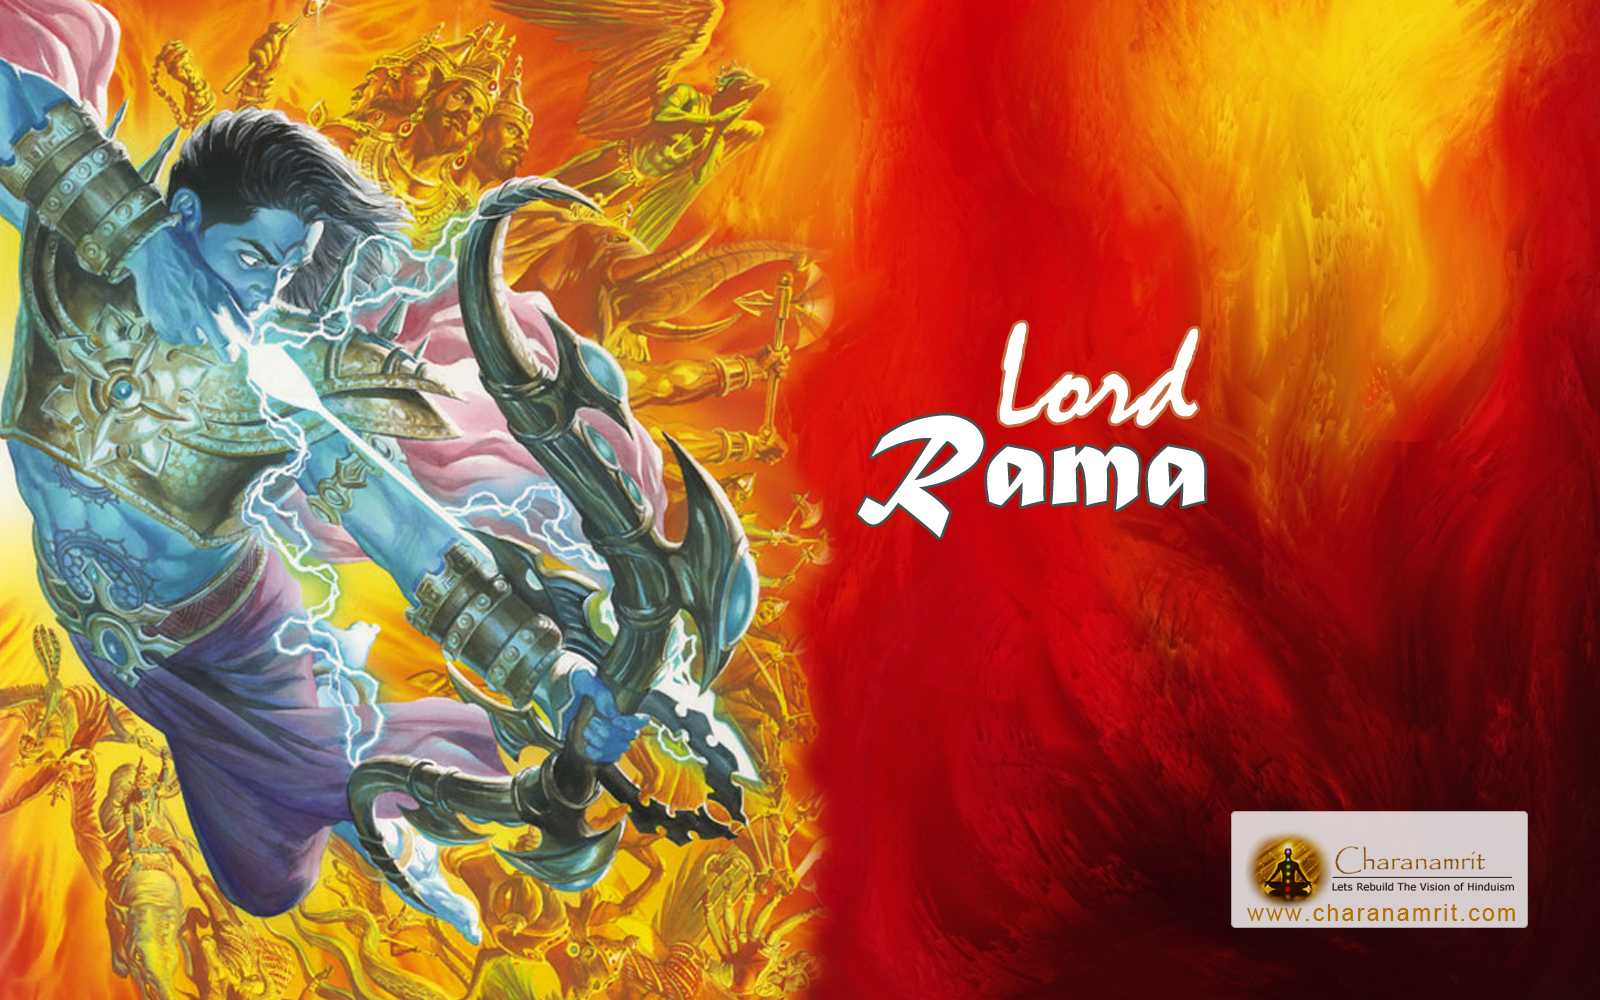 God Shri Ram angry stylish 3D HD Wallpaper for download Lord Ram 1600x1000